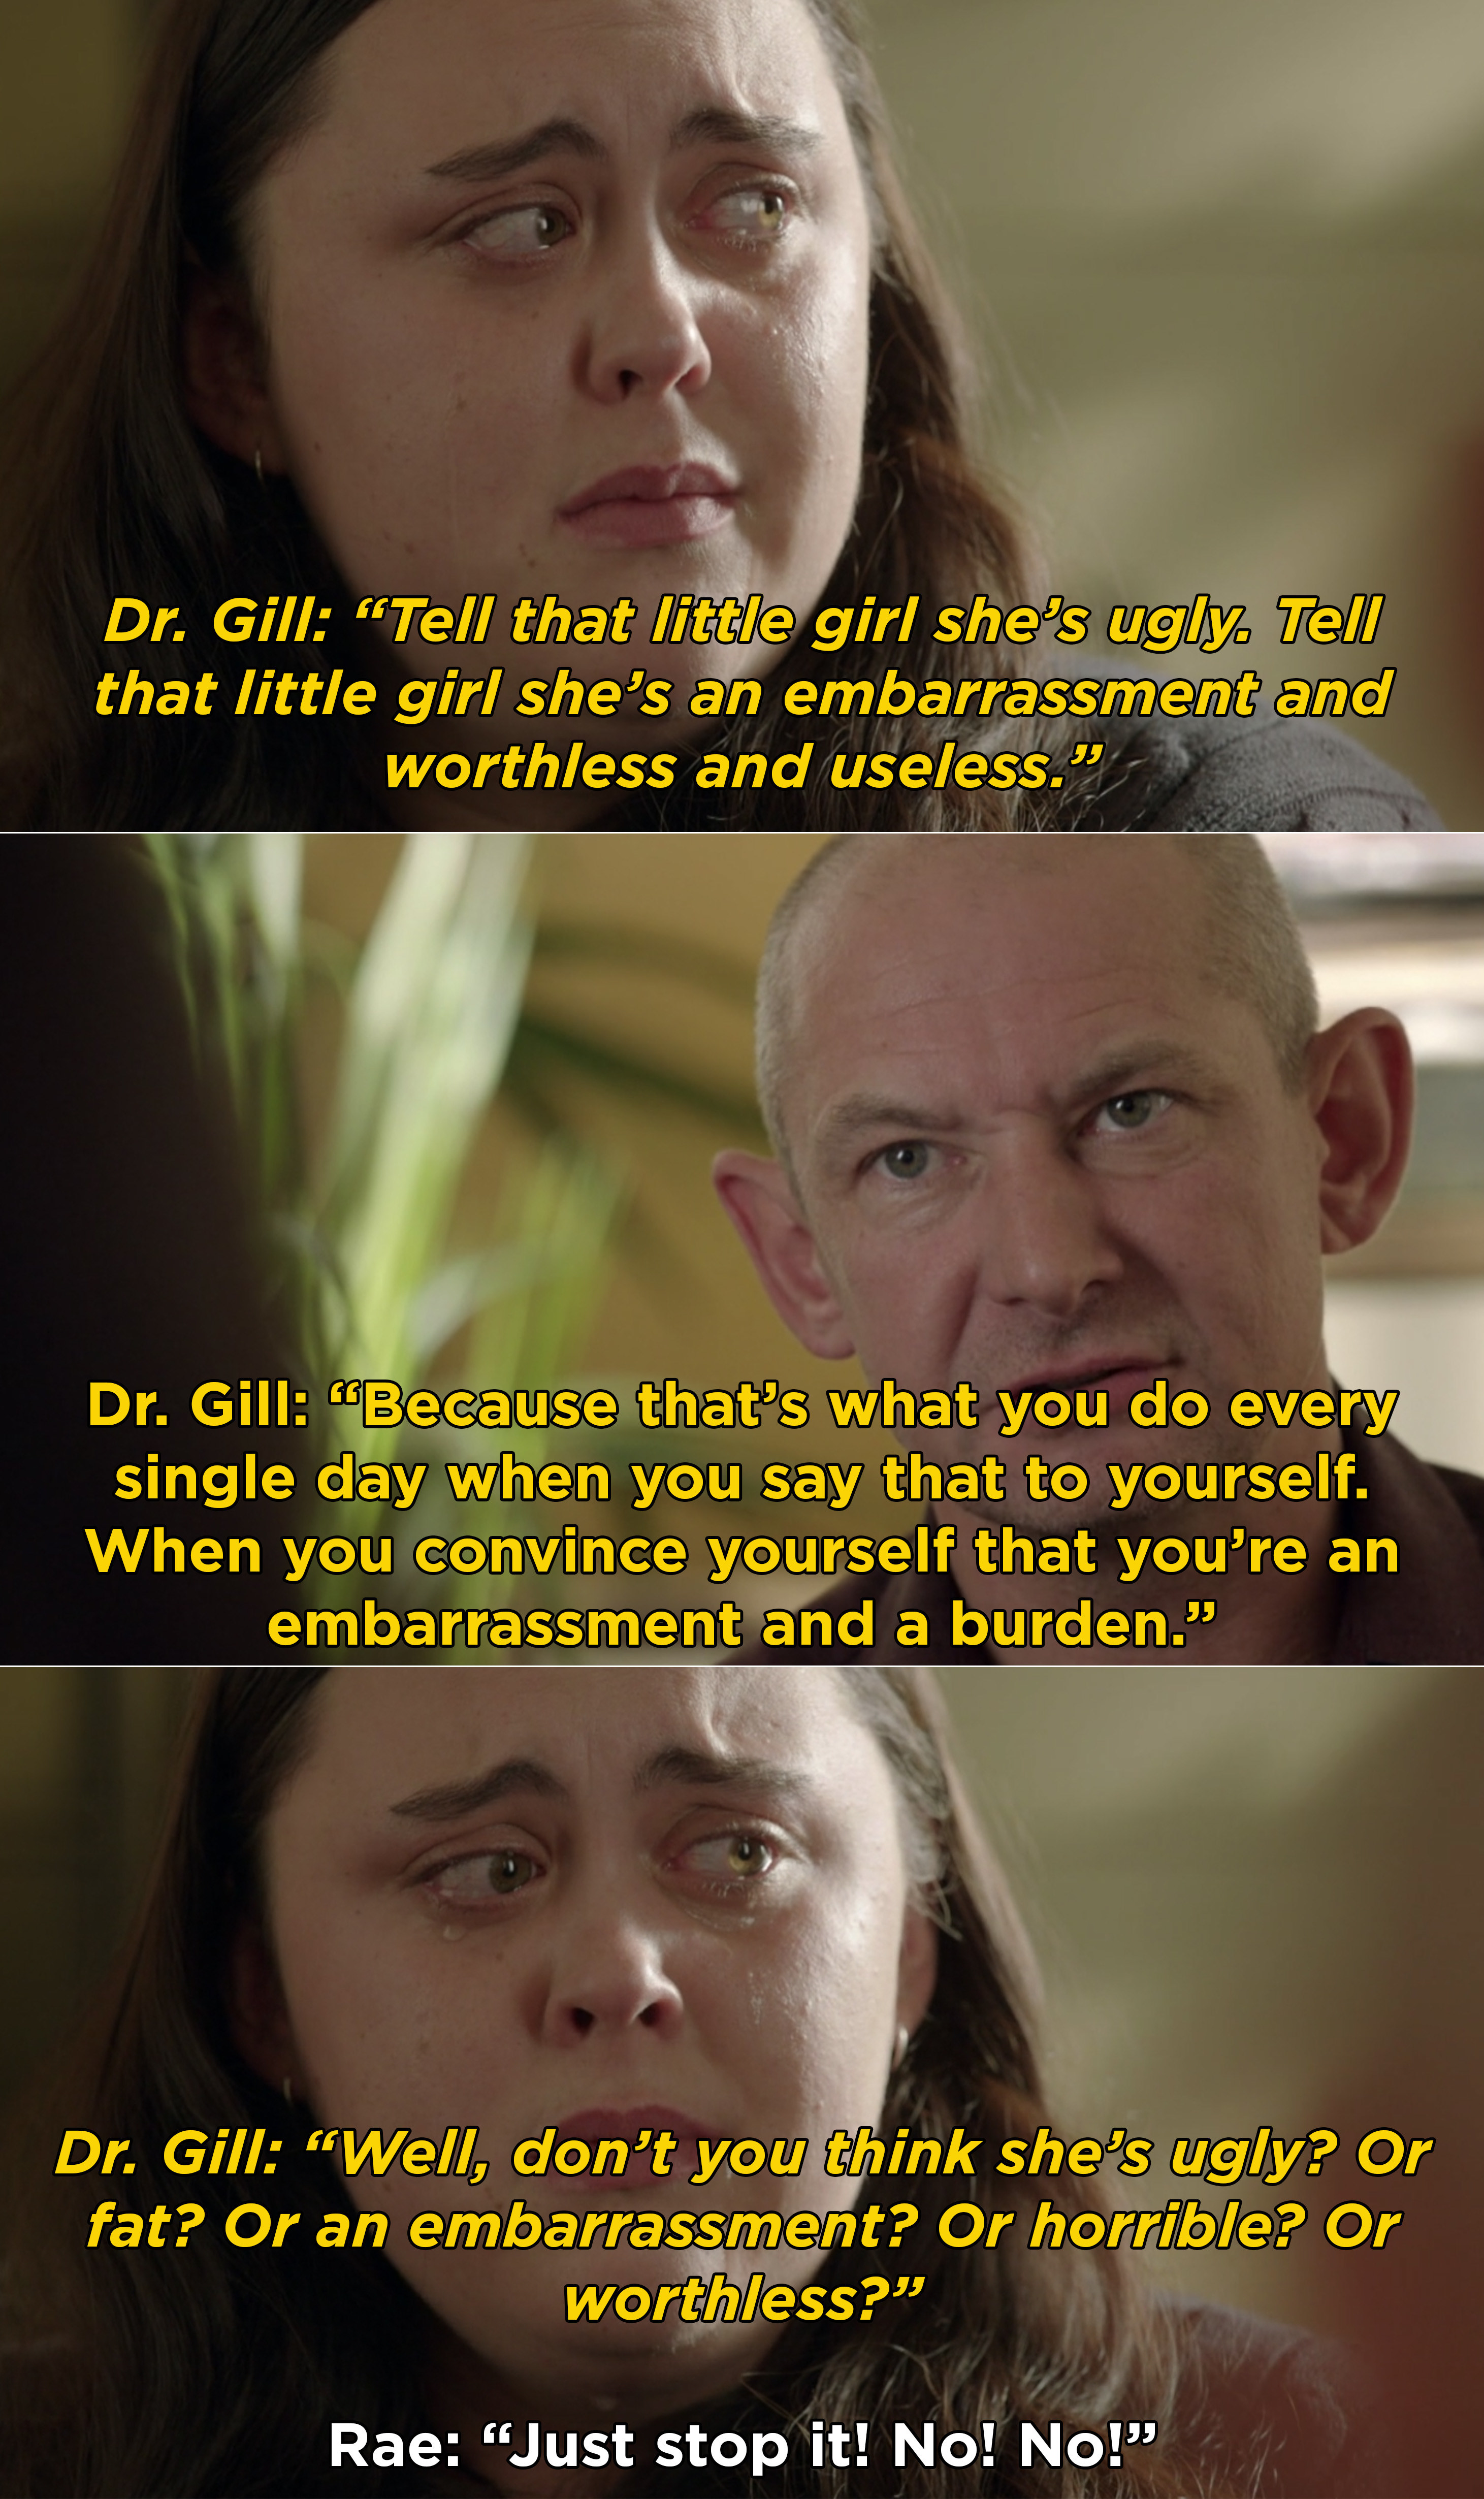 Dr. Gill telling Rae to tell her younger self that she's worthless, ugly, fat, and an embarassment, and Rae refusing